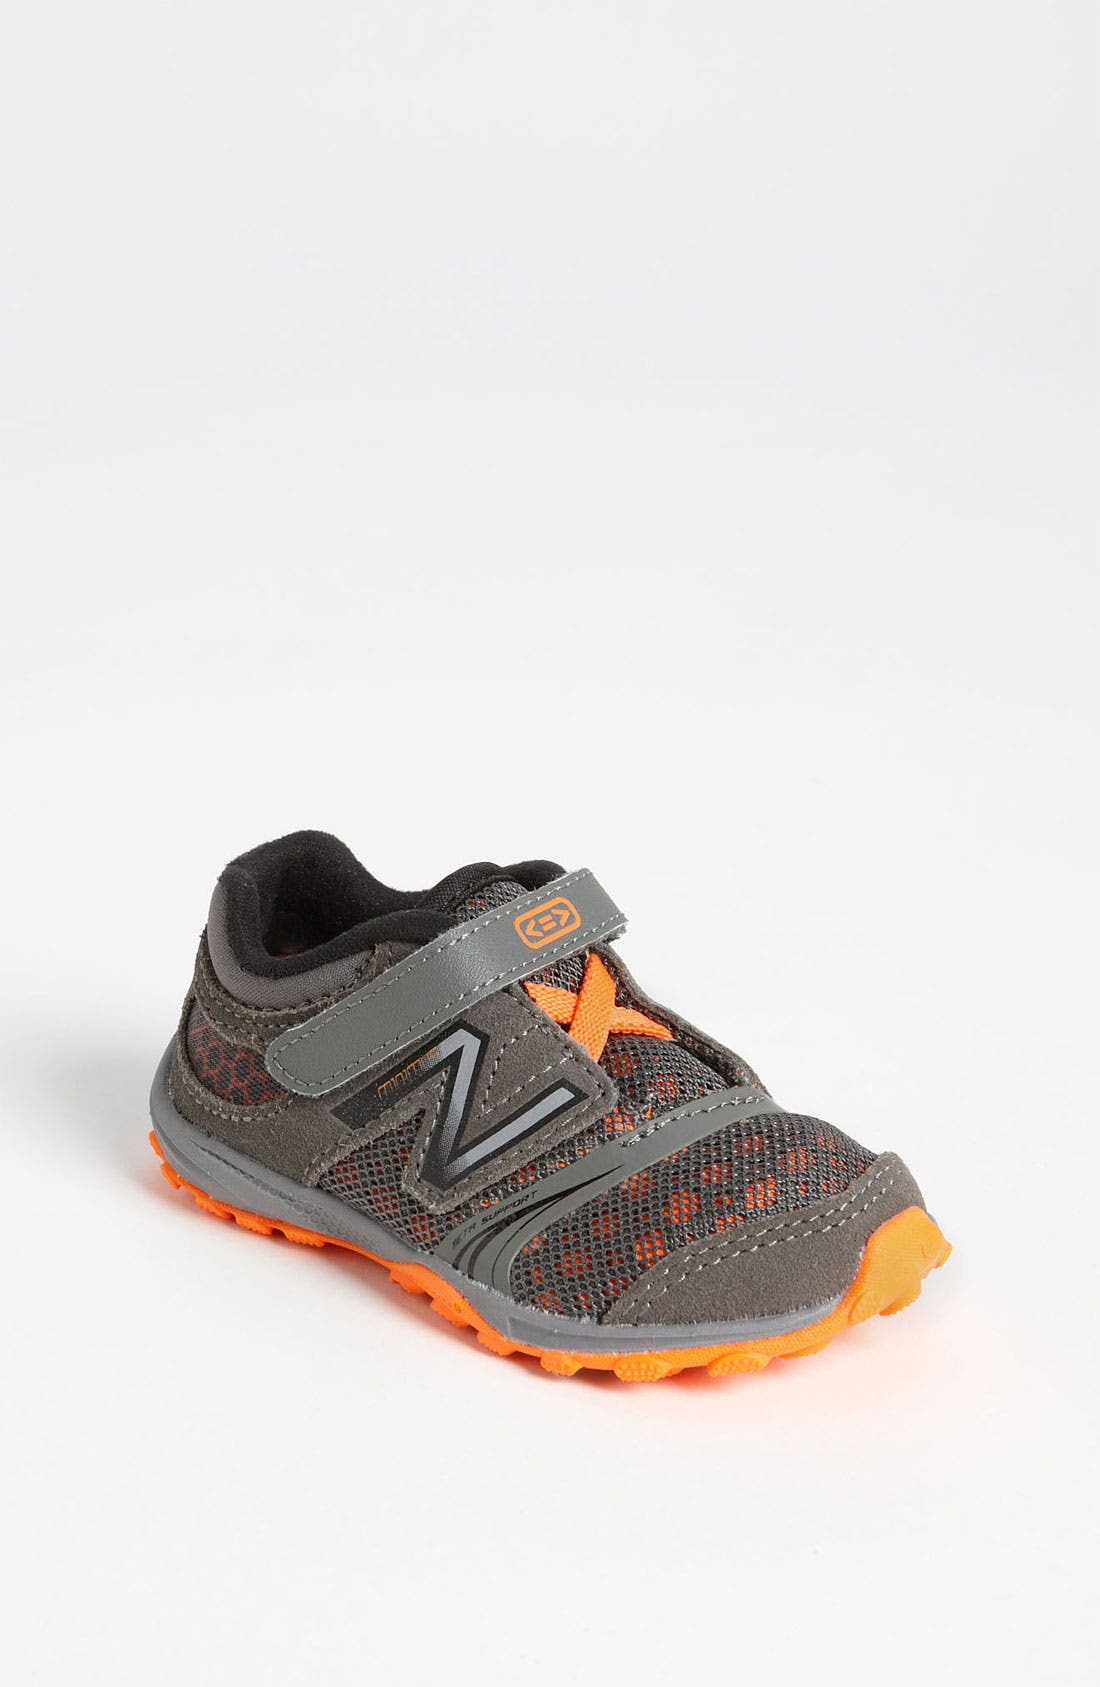 Alternate Image 1 Selected - New Balance 'Takedown 20V3' Running Shoe (Baby, Walker & Toddler)